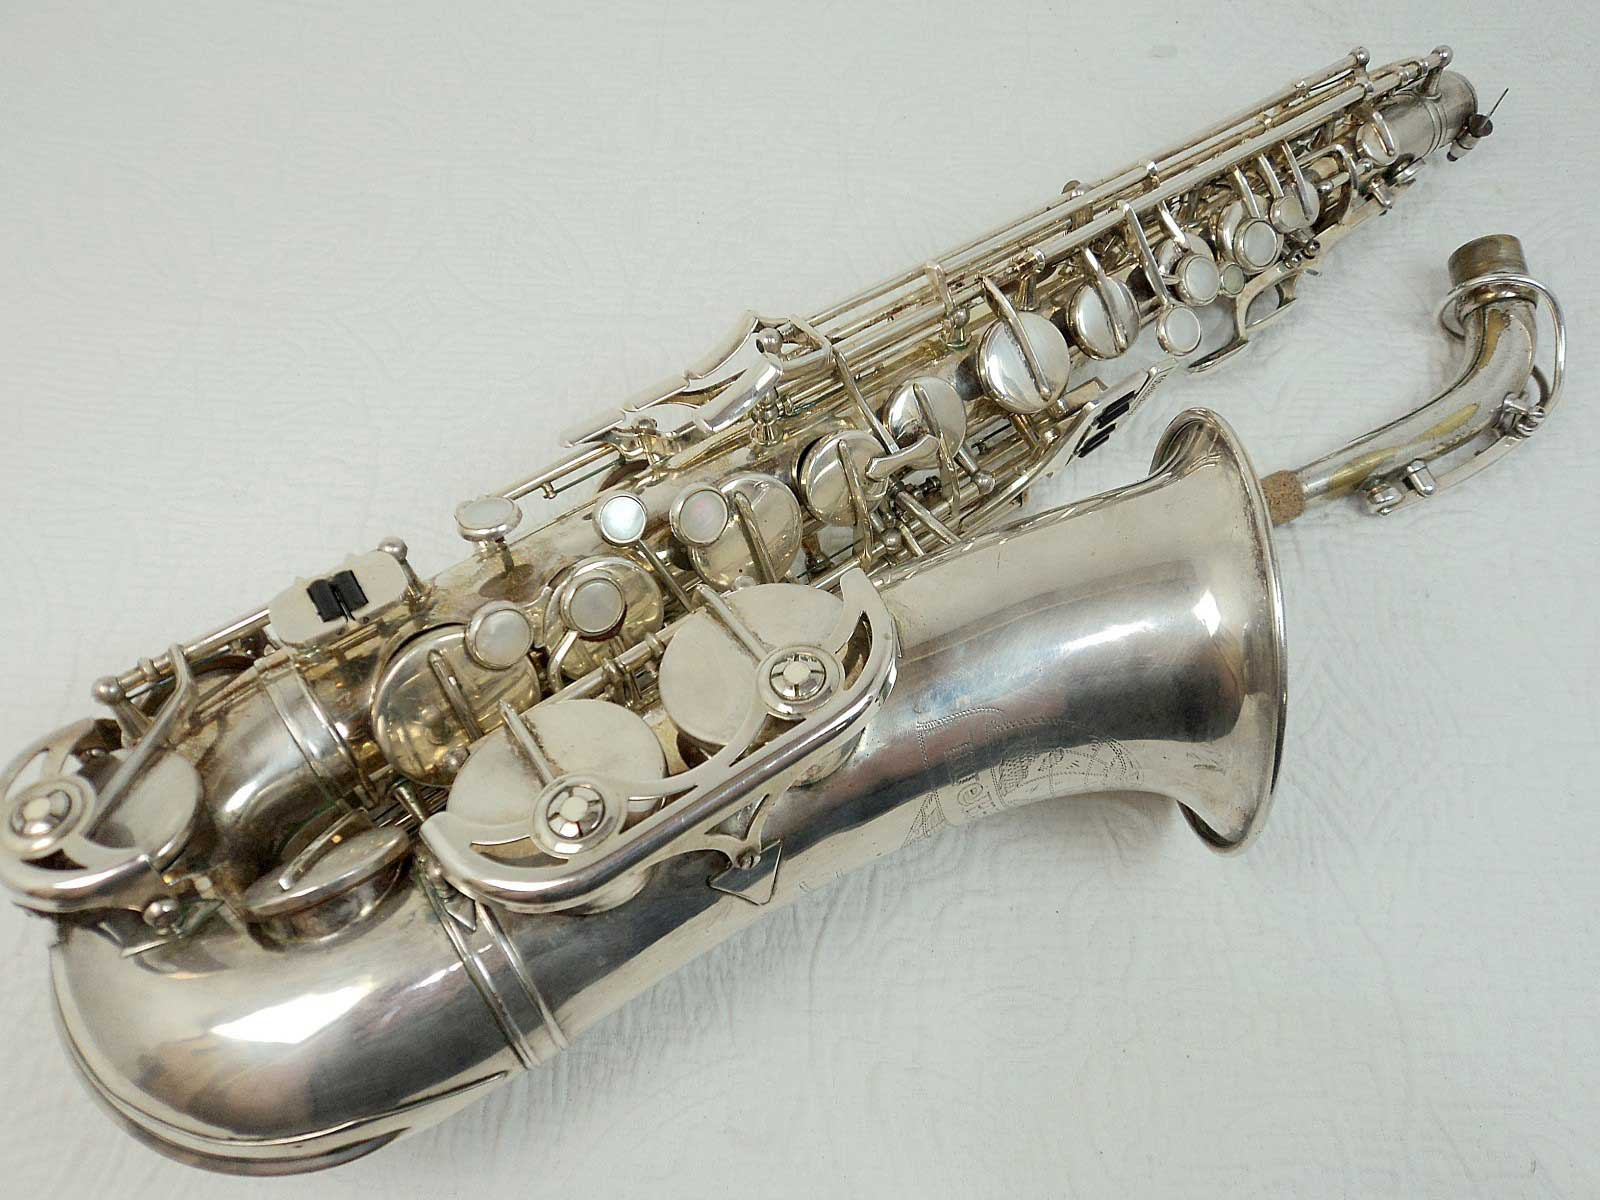 Selmer Saxophones - The models, the players, the history